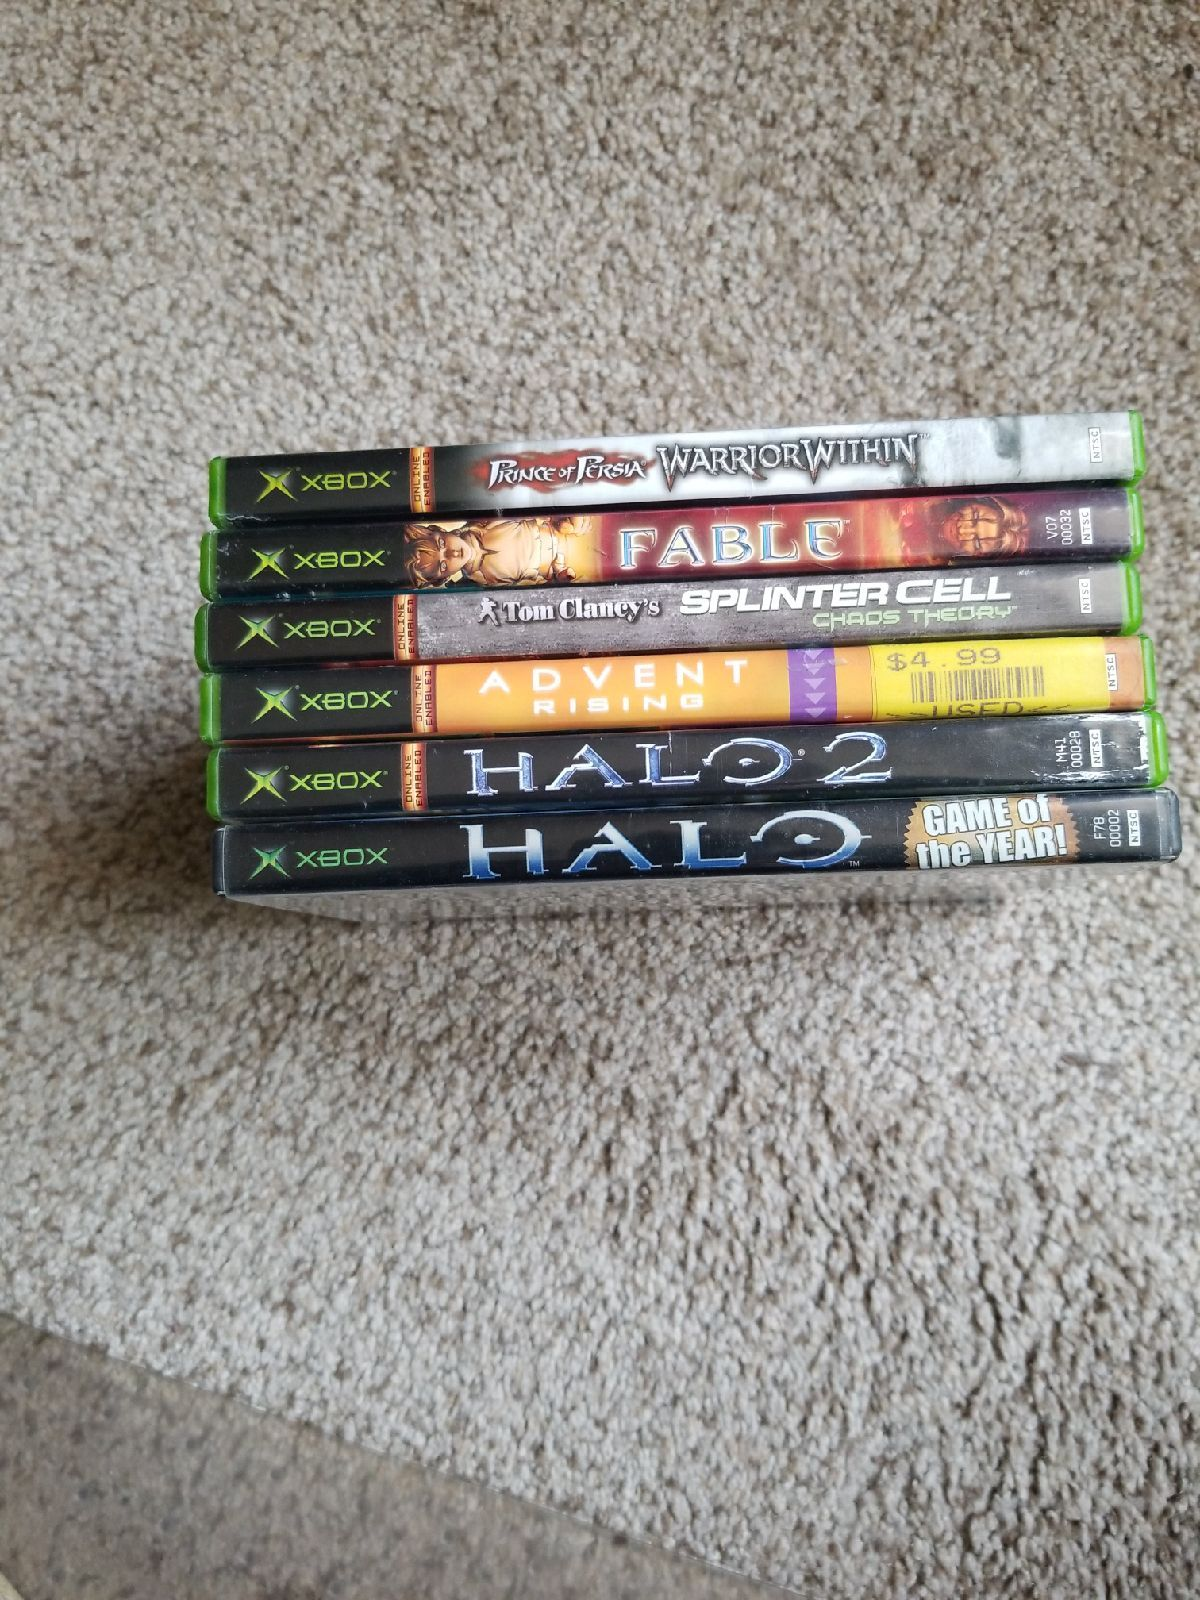 Check out my 6 Assorted Xbox Games With Manuals! This is